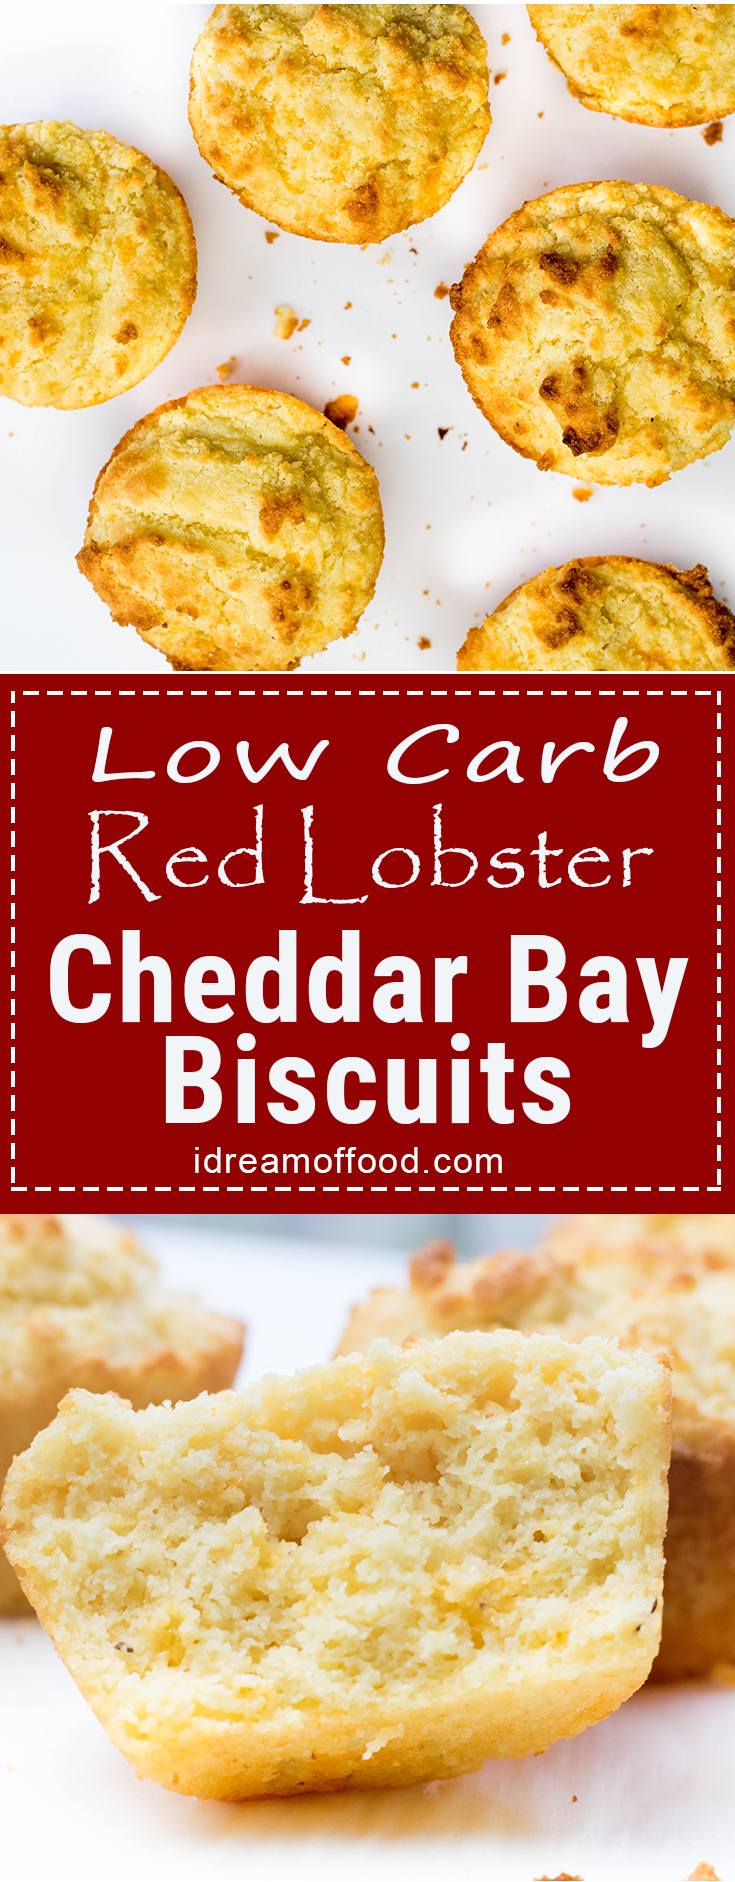 photo Red Lobster is dropping a cheddar-biscuit flavored lip balm